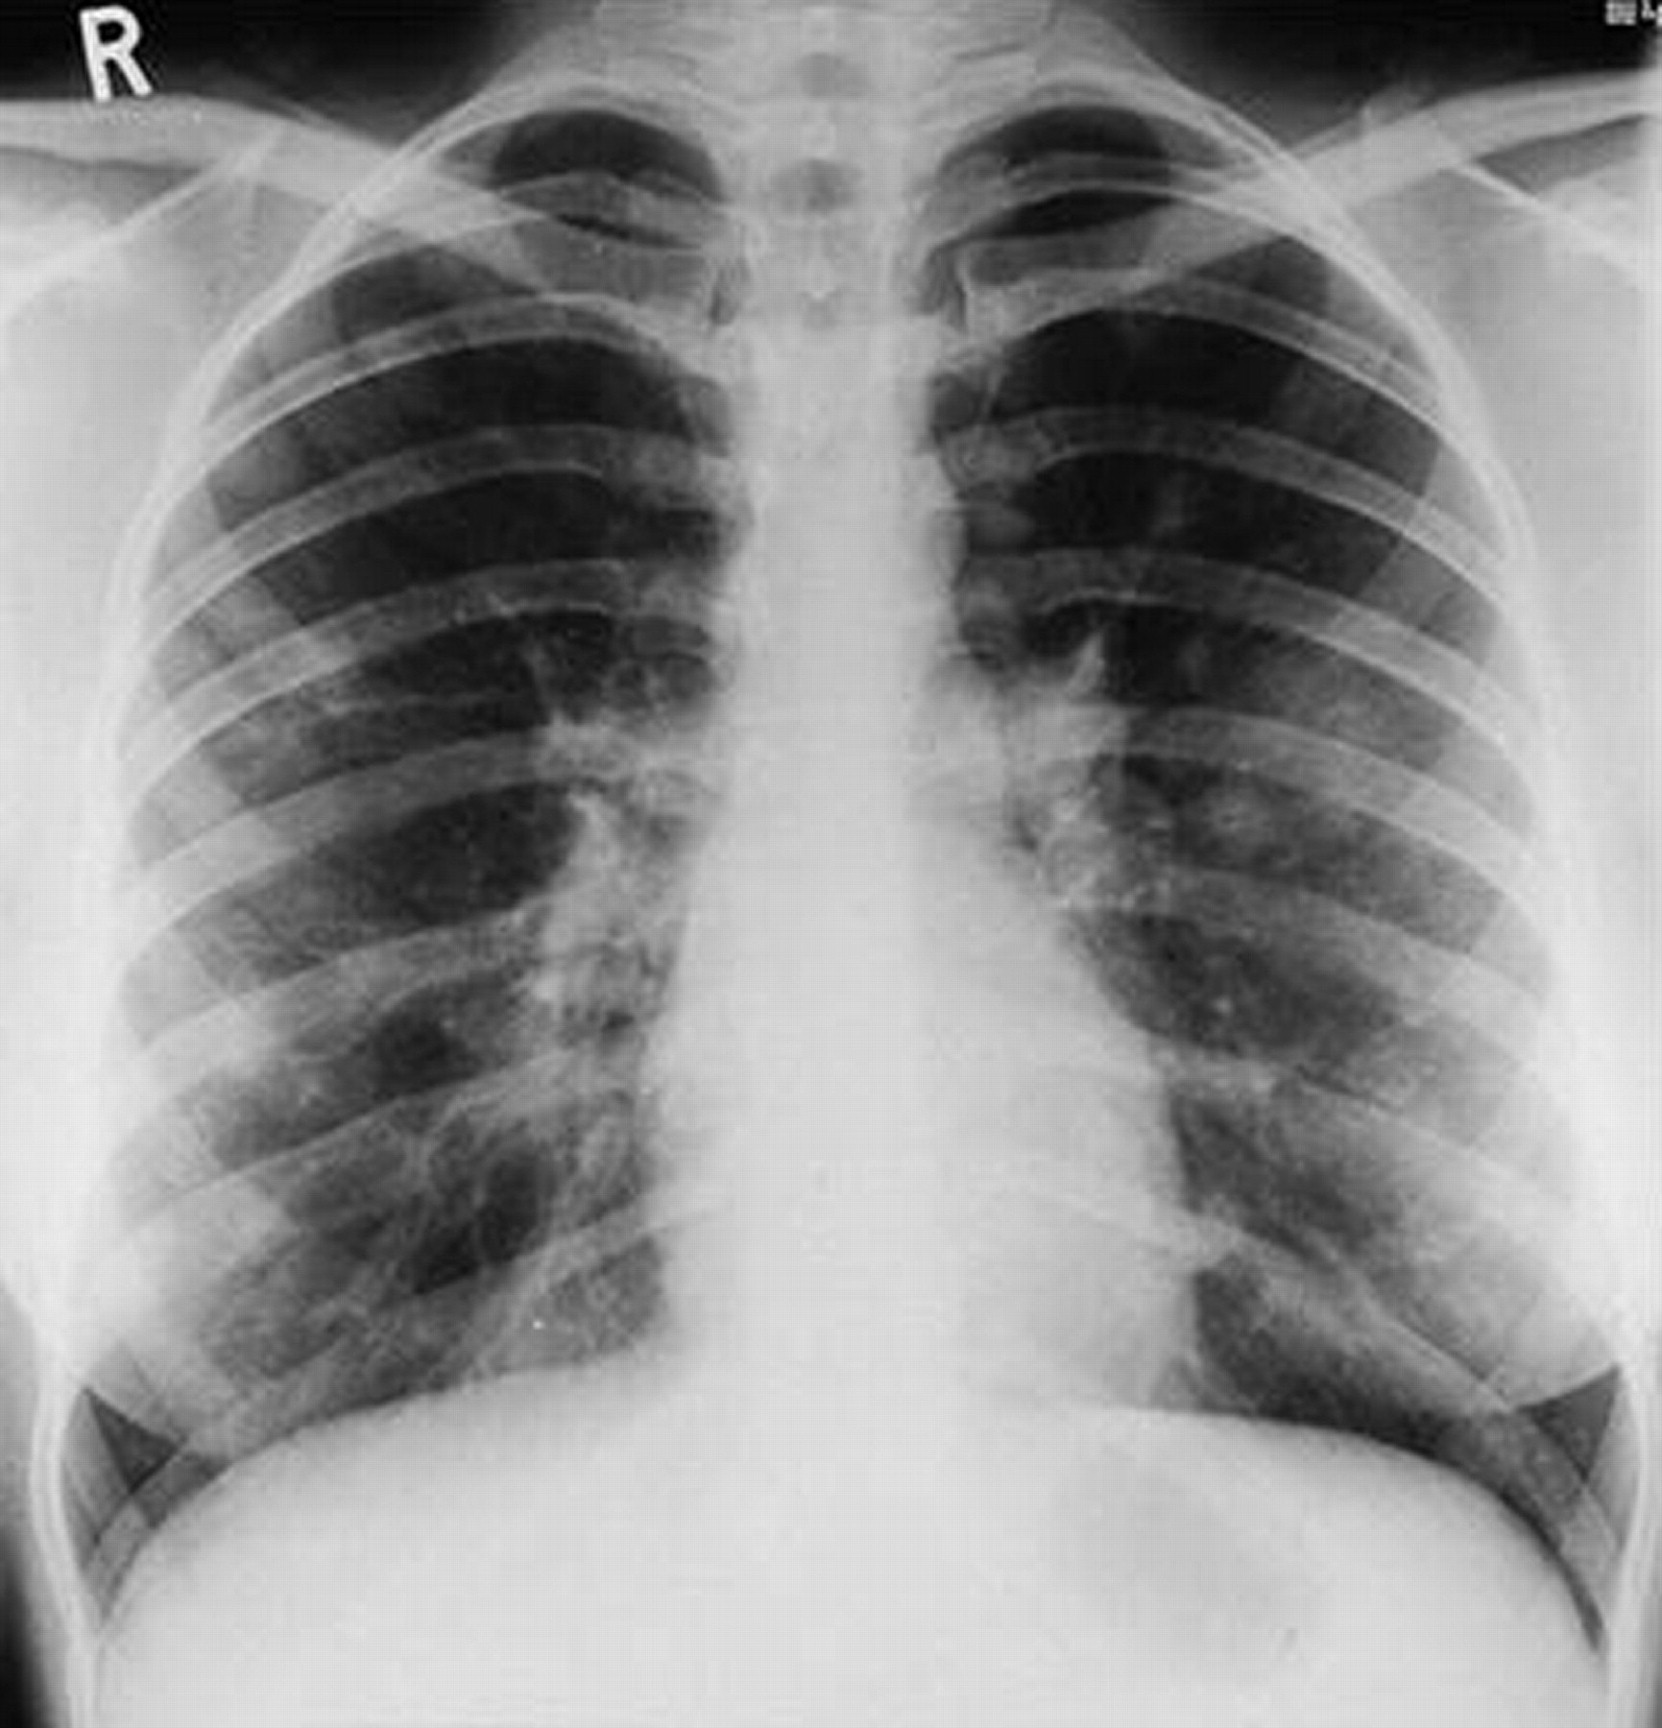 Parasitic infections of the lung: a guide for the